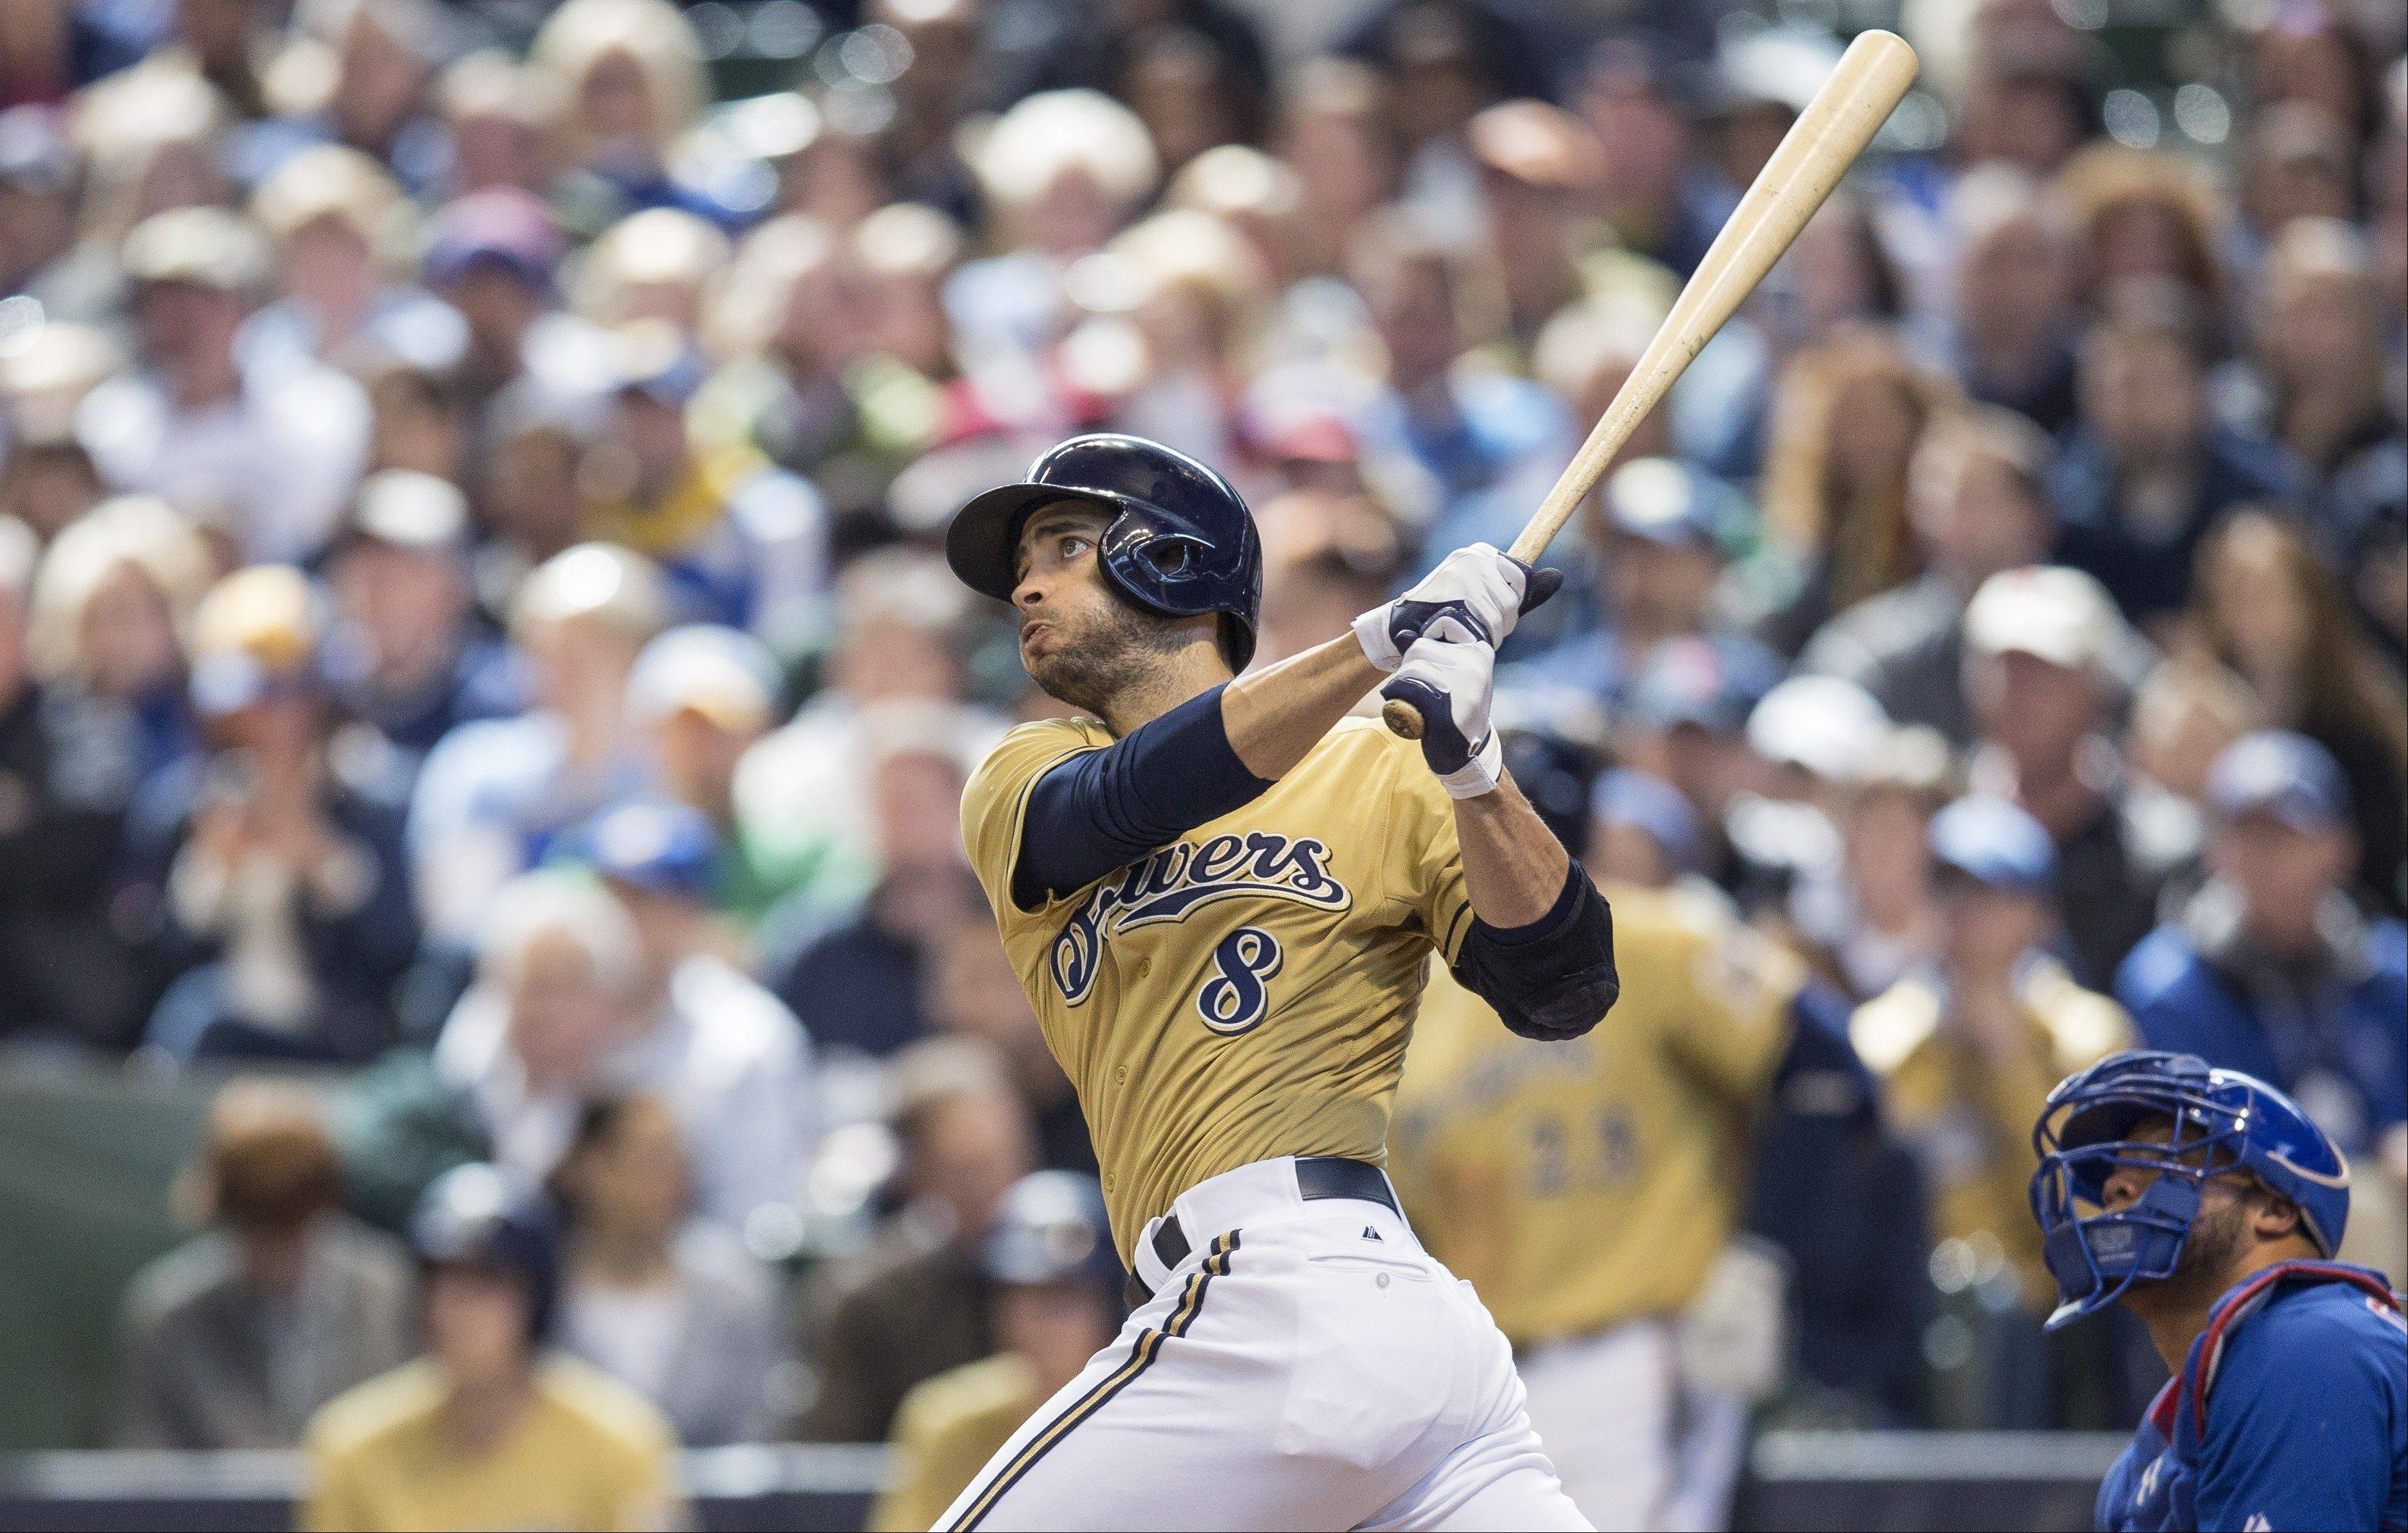 The Brewers� Ryan Braun connects for a 3-run, game-deciding home run off Cubs starter Scott Feldman in the fifth inning Sunday. It was Feldman�s error that extended the inning to bring Braun to the plate.